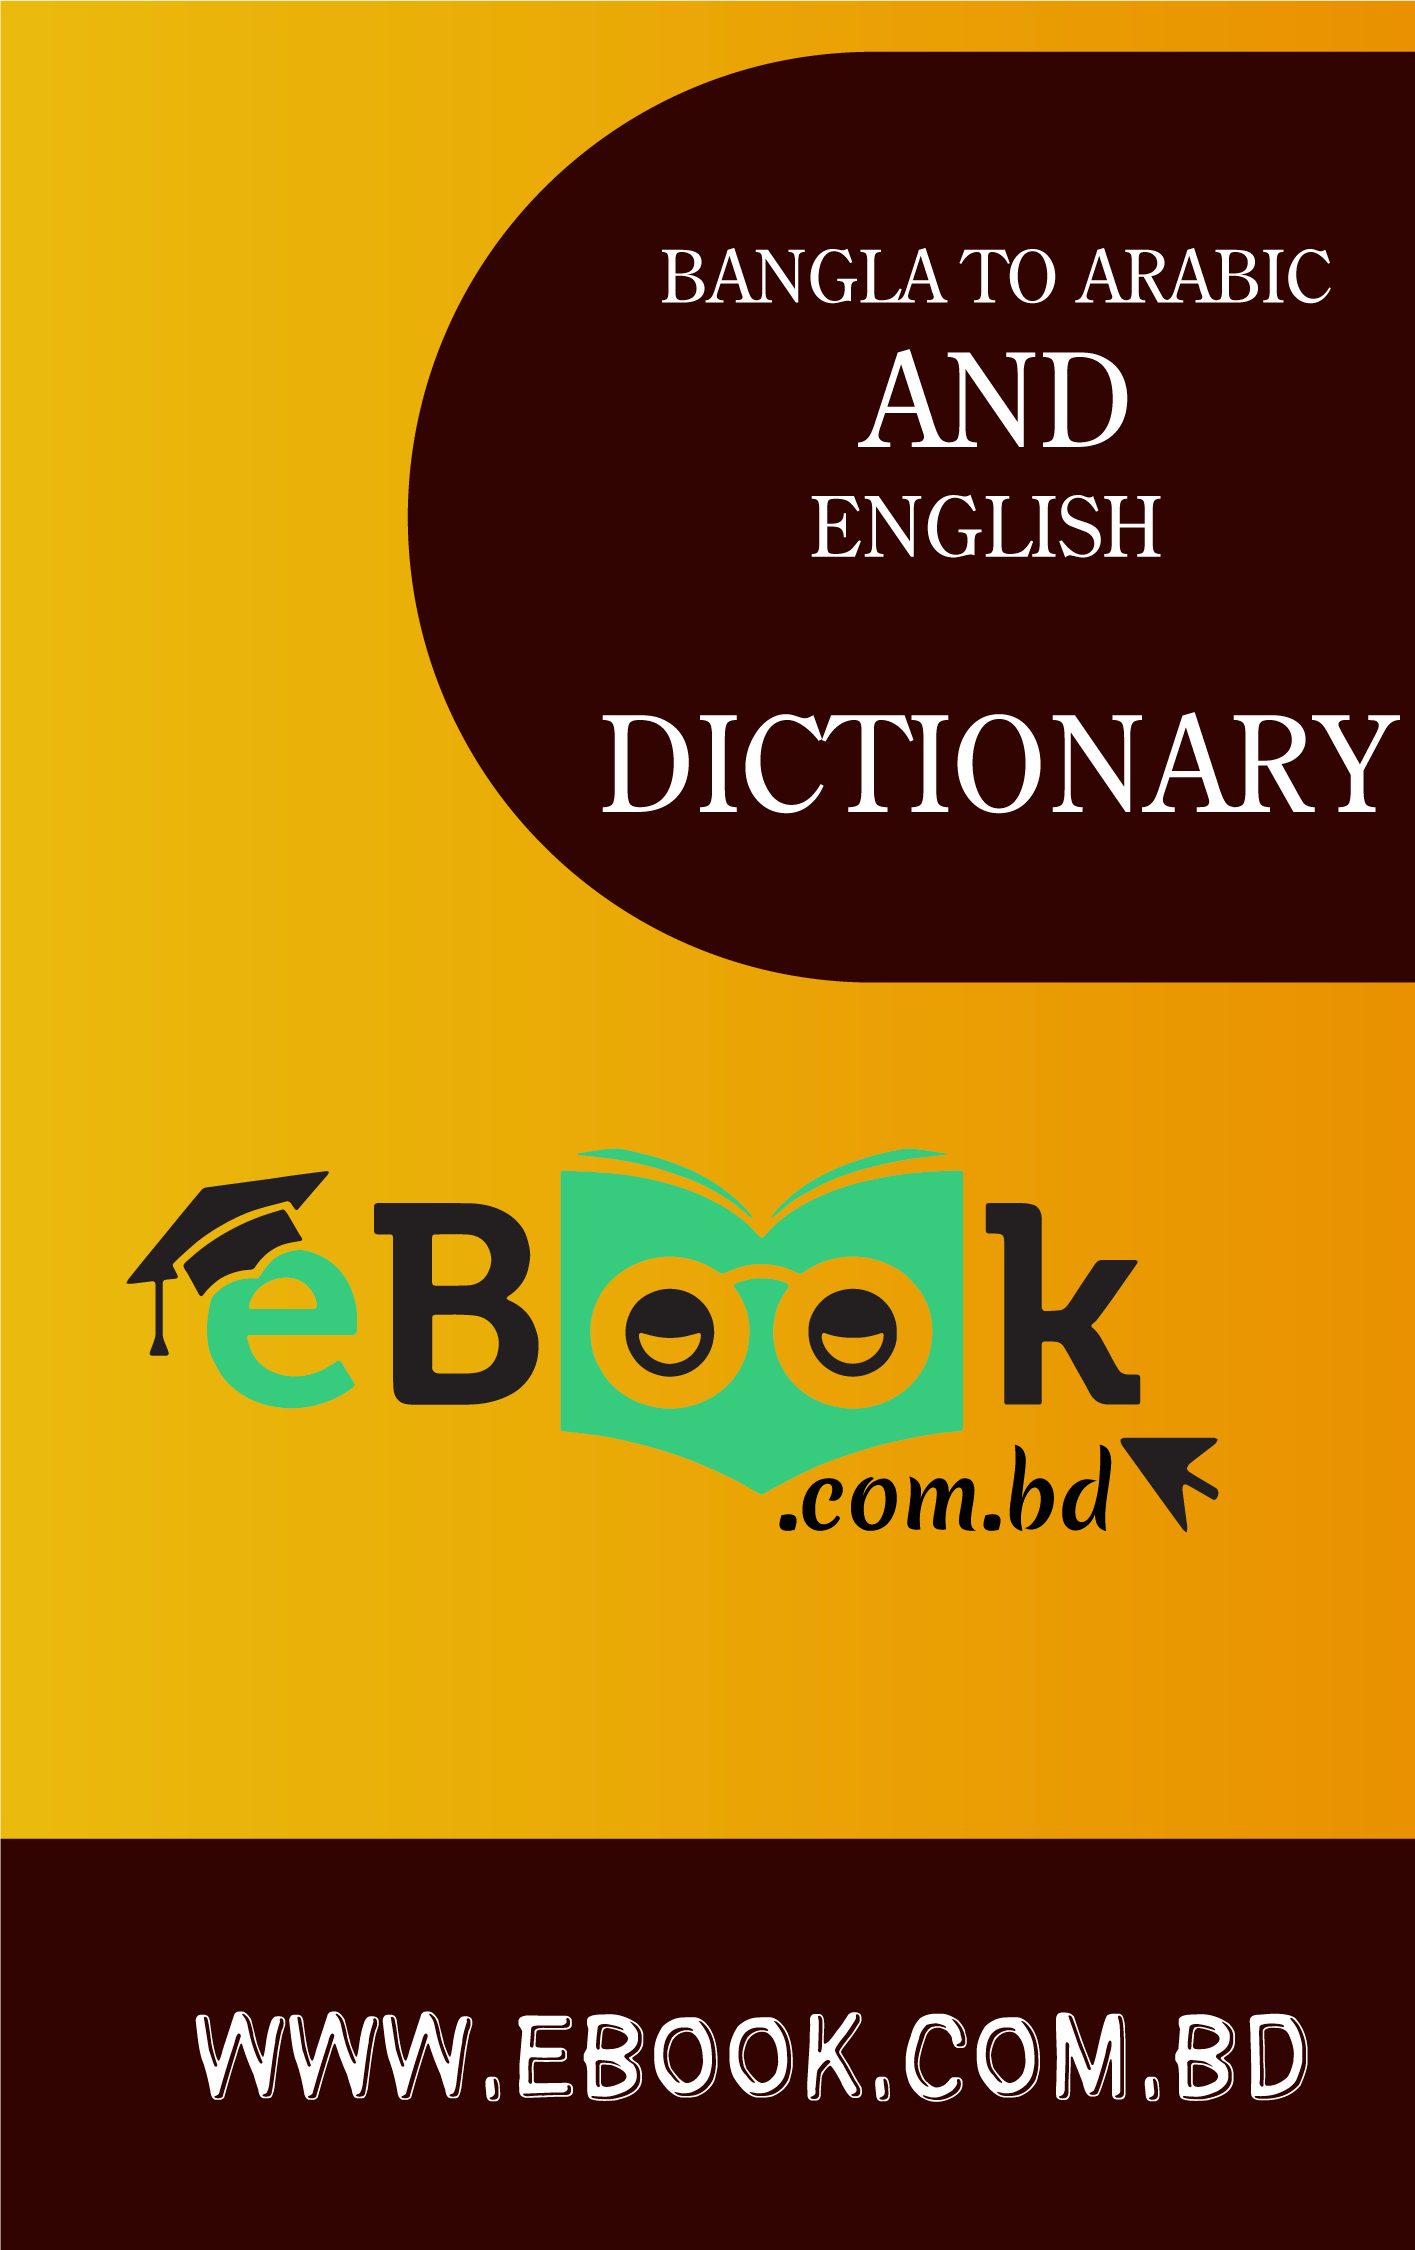 Bangla to Arabic & English Dictionary - Bangla to Arabic & English Dictionary